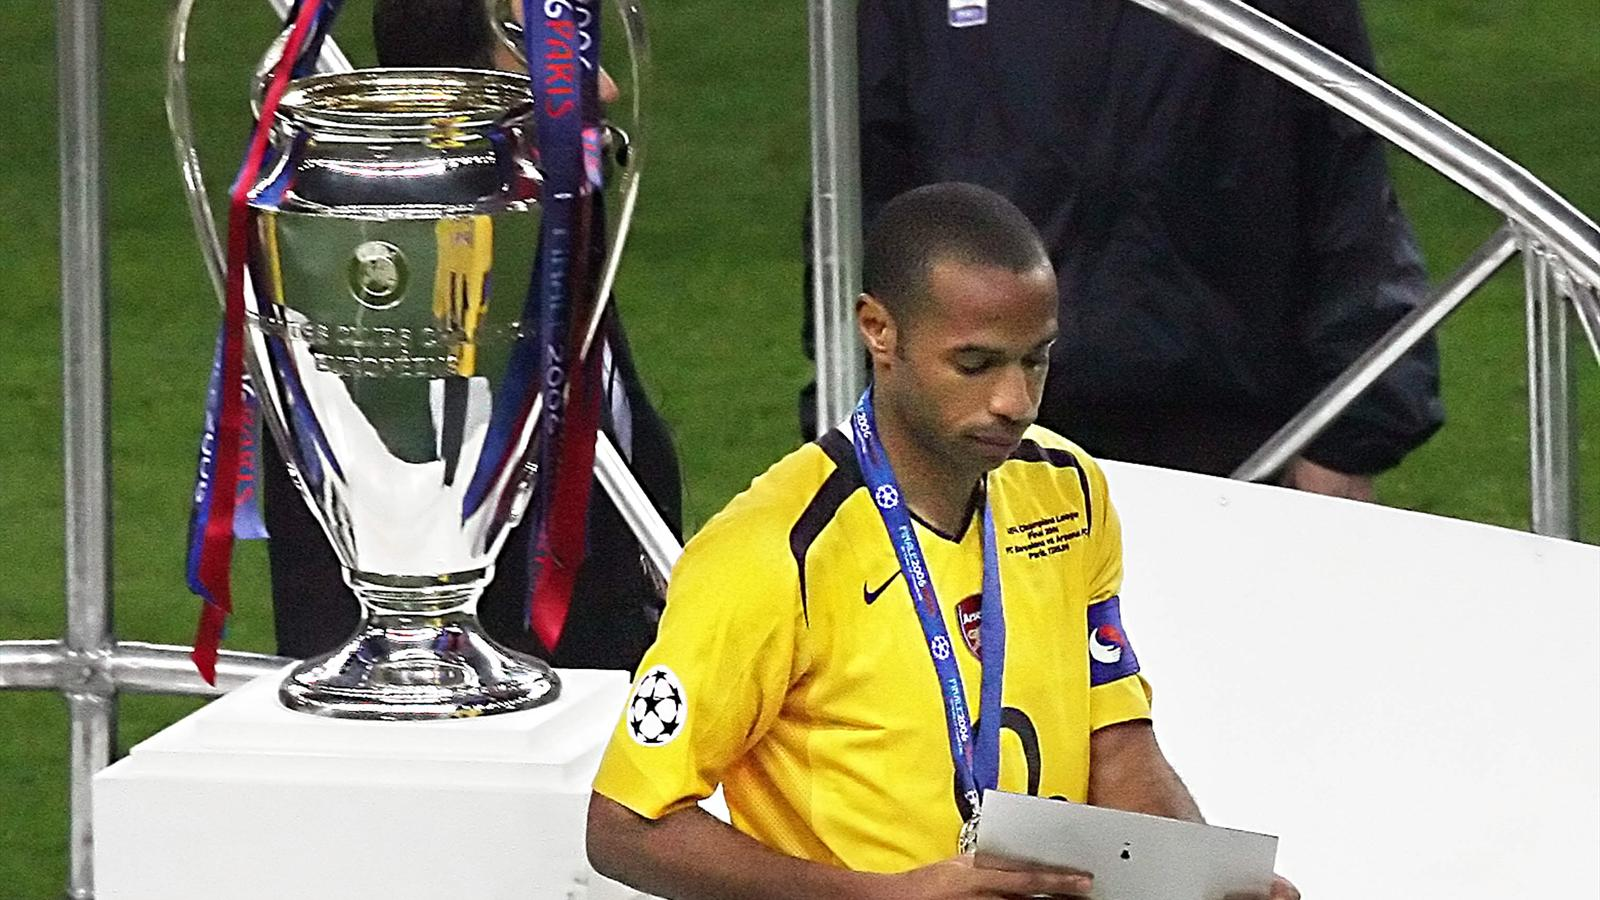 Arsenal's French forward and team captain Thierry Henry passes next to the UEFA Champion's League trophy